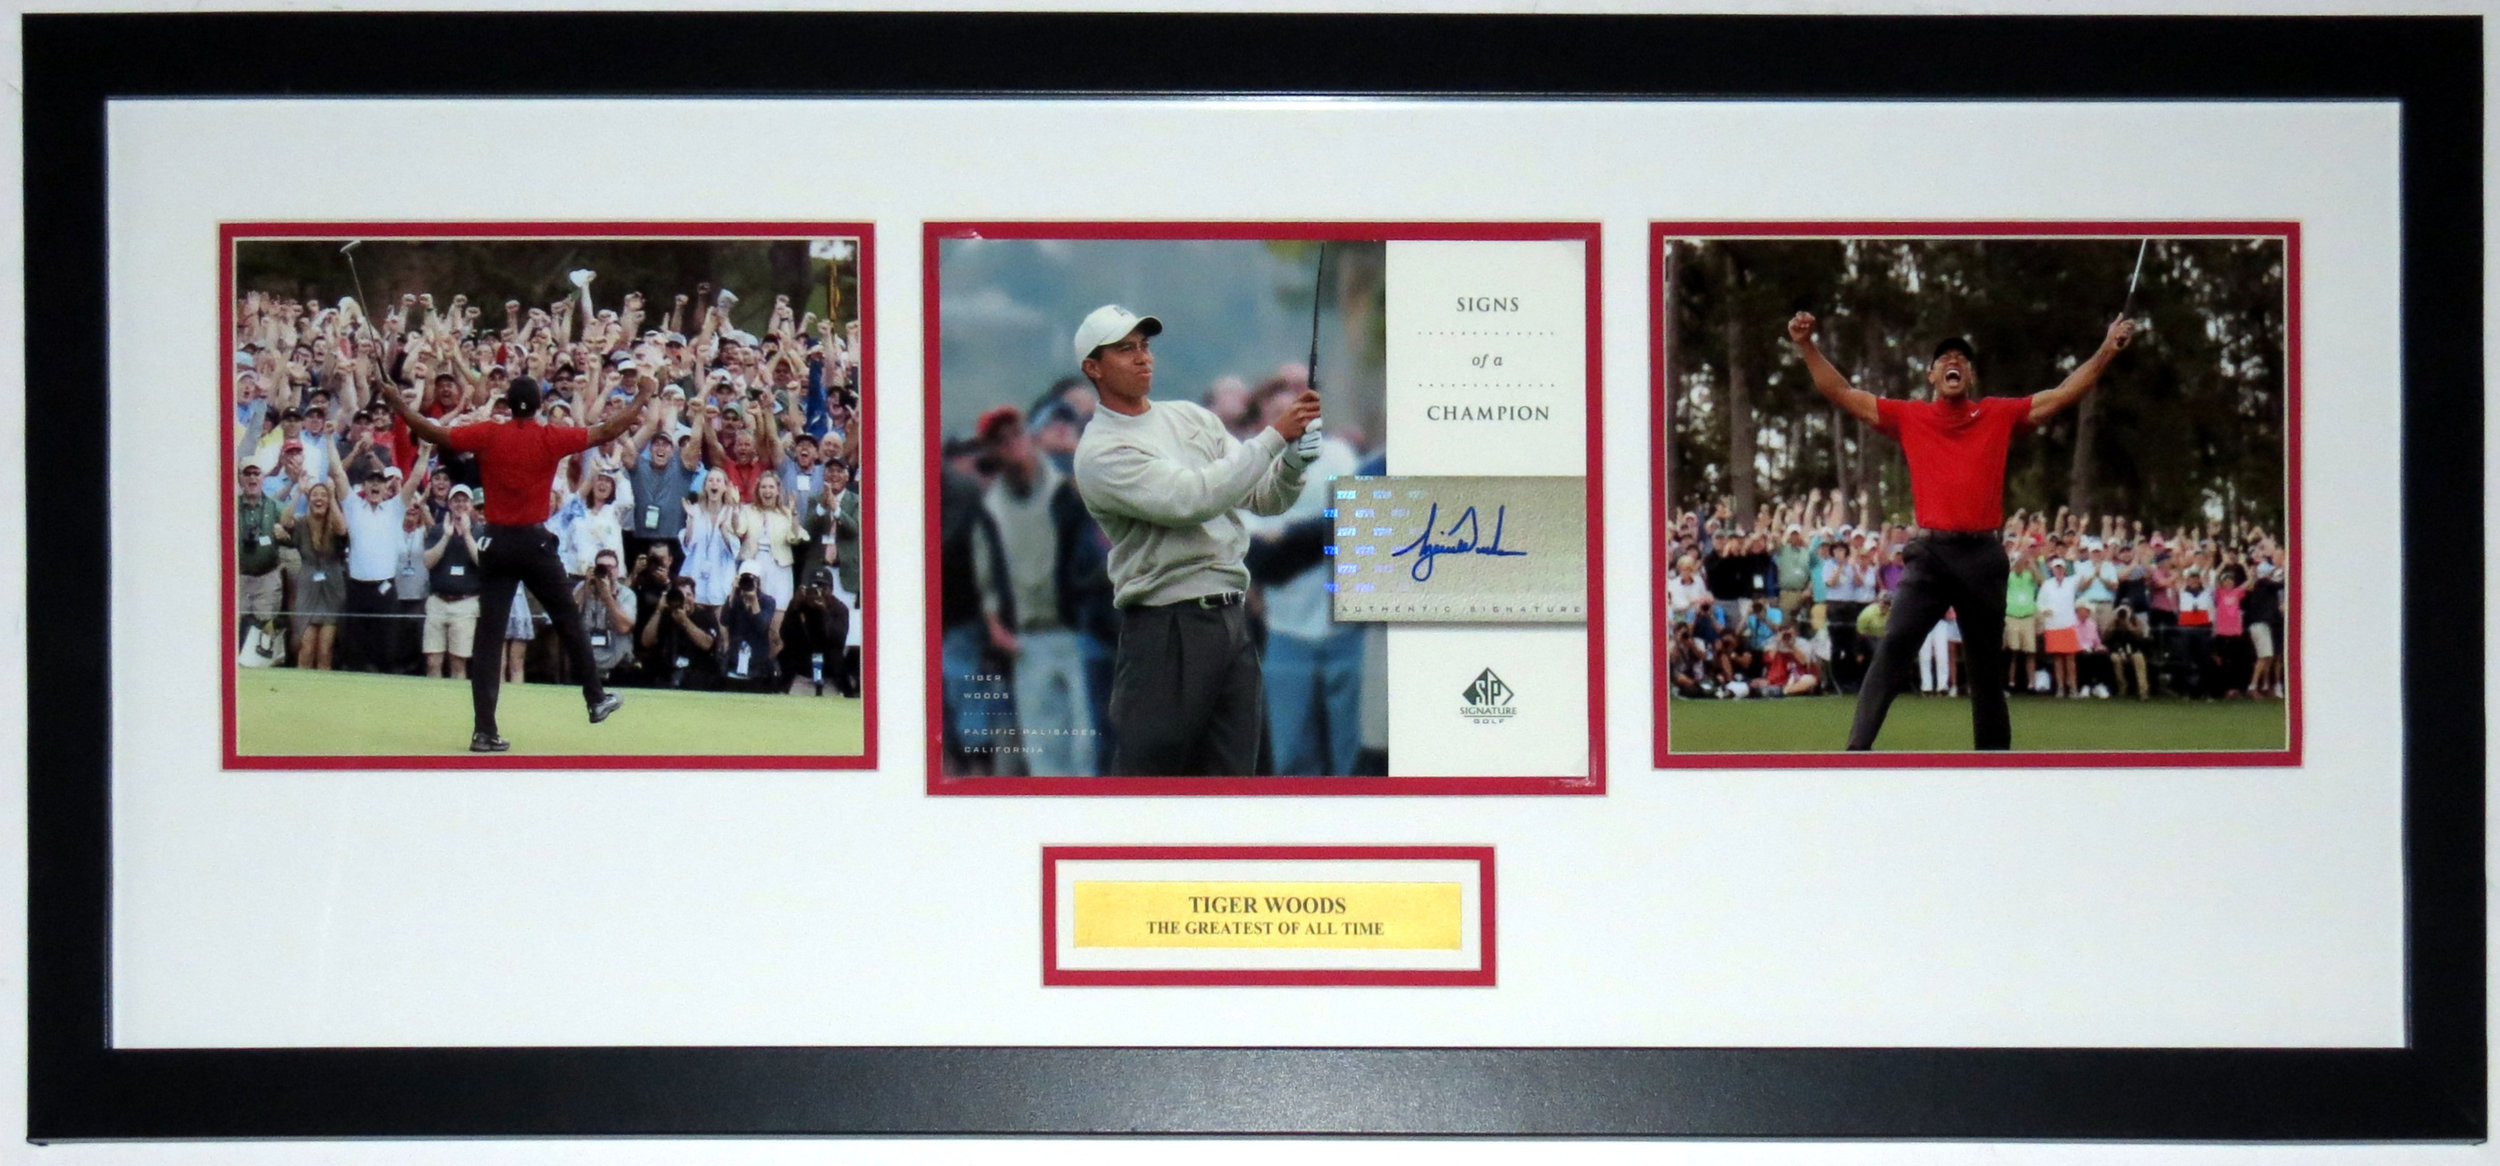 Tiger Woods Signed 2019 Masters 3 8x10 Photo Compilation - Upper Deck Authenticated UDA COA - Professionally Framed & Greatest of All Time Plate